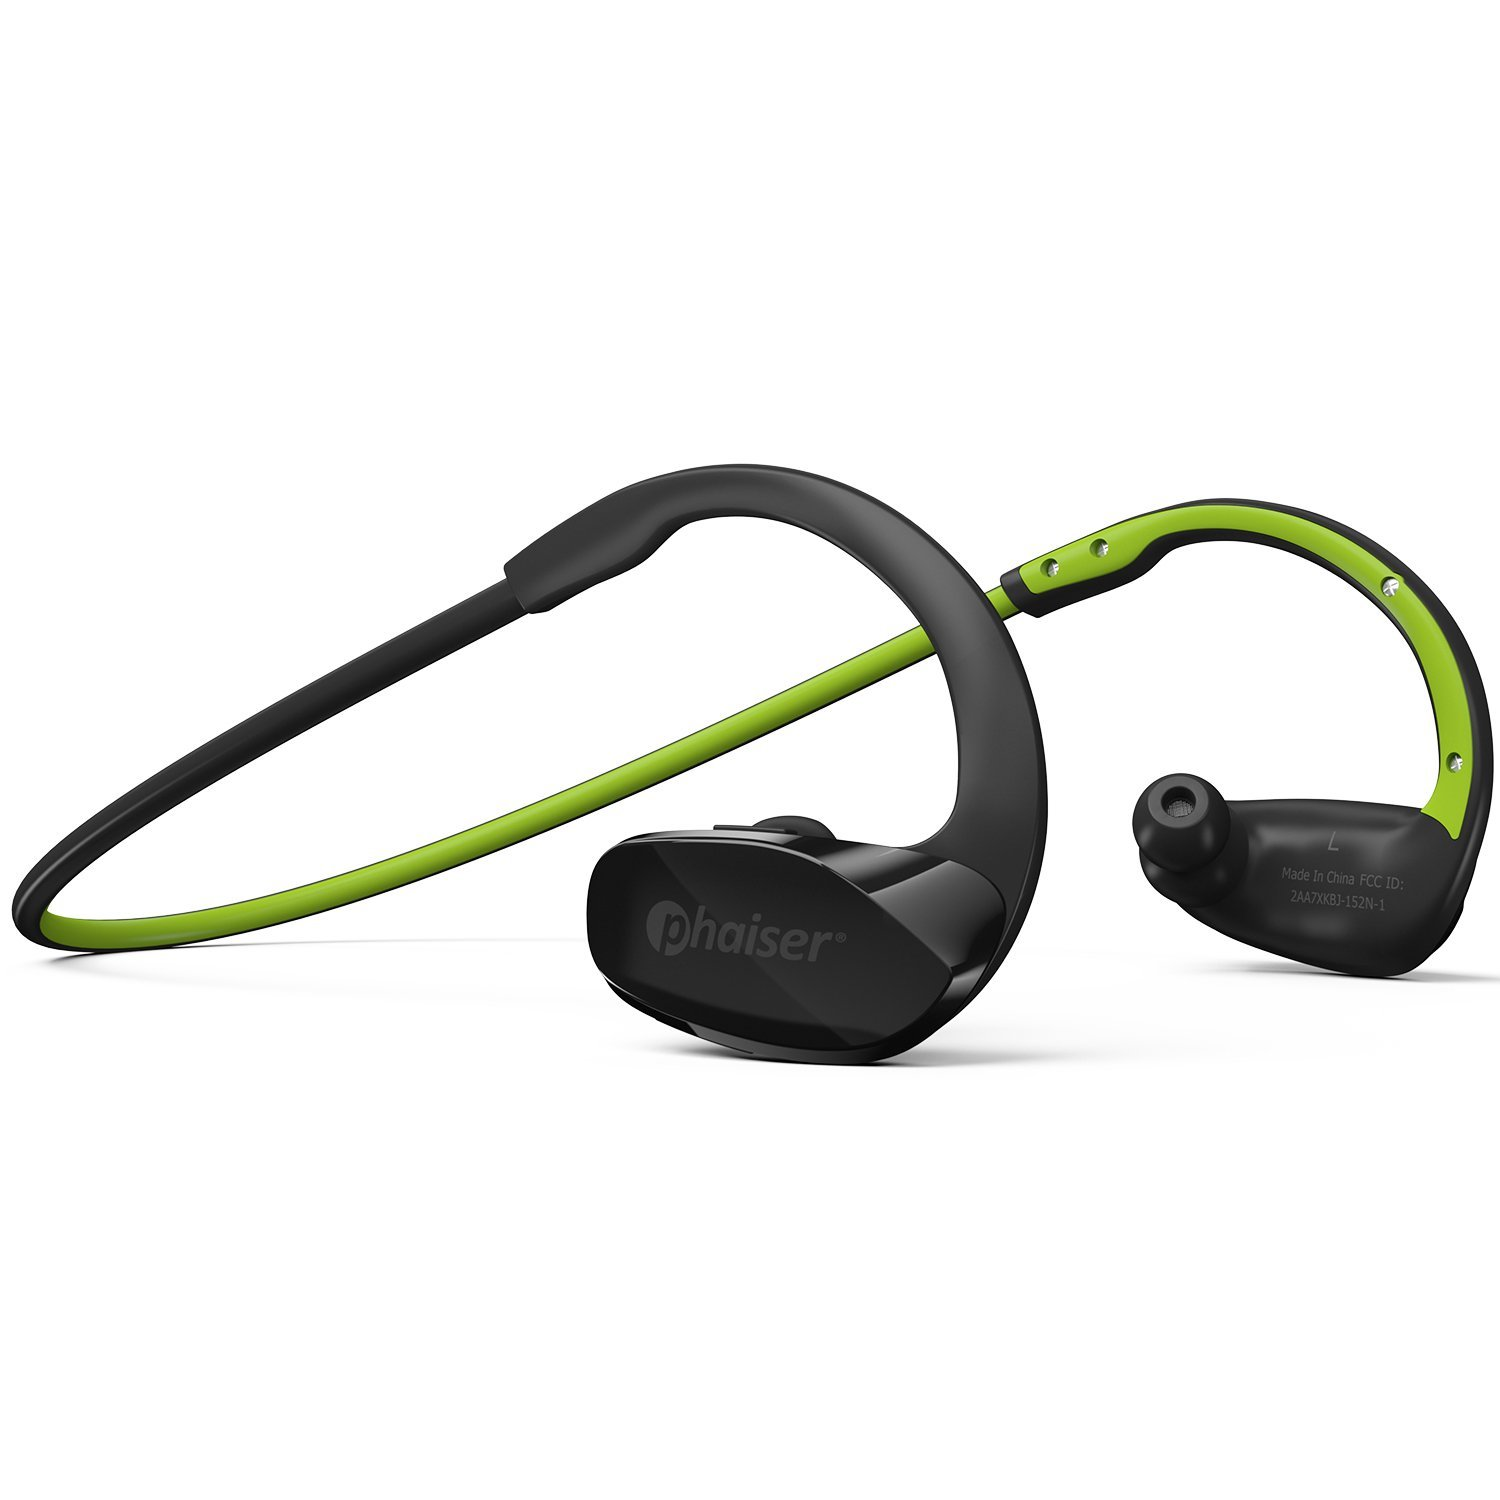 Phaiser BHS-530 Wireless Bluetooth Headset, Sport Headphones/Earbuds